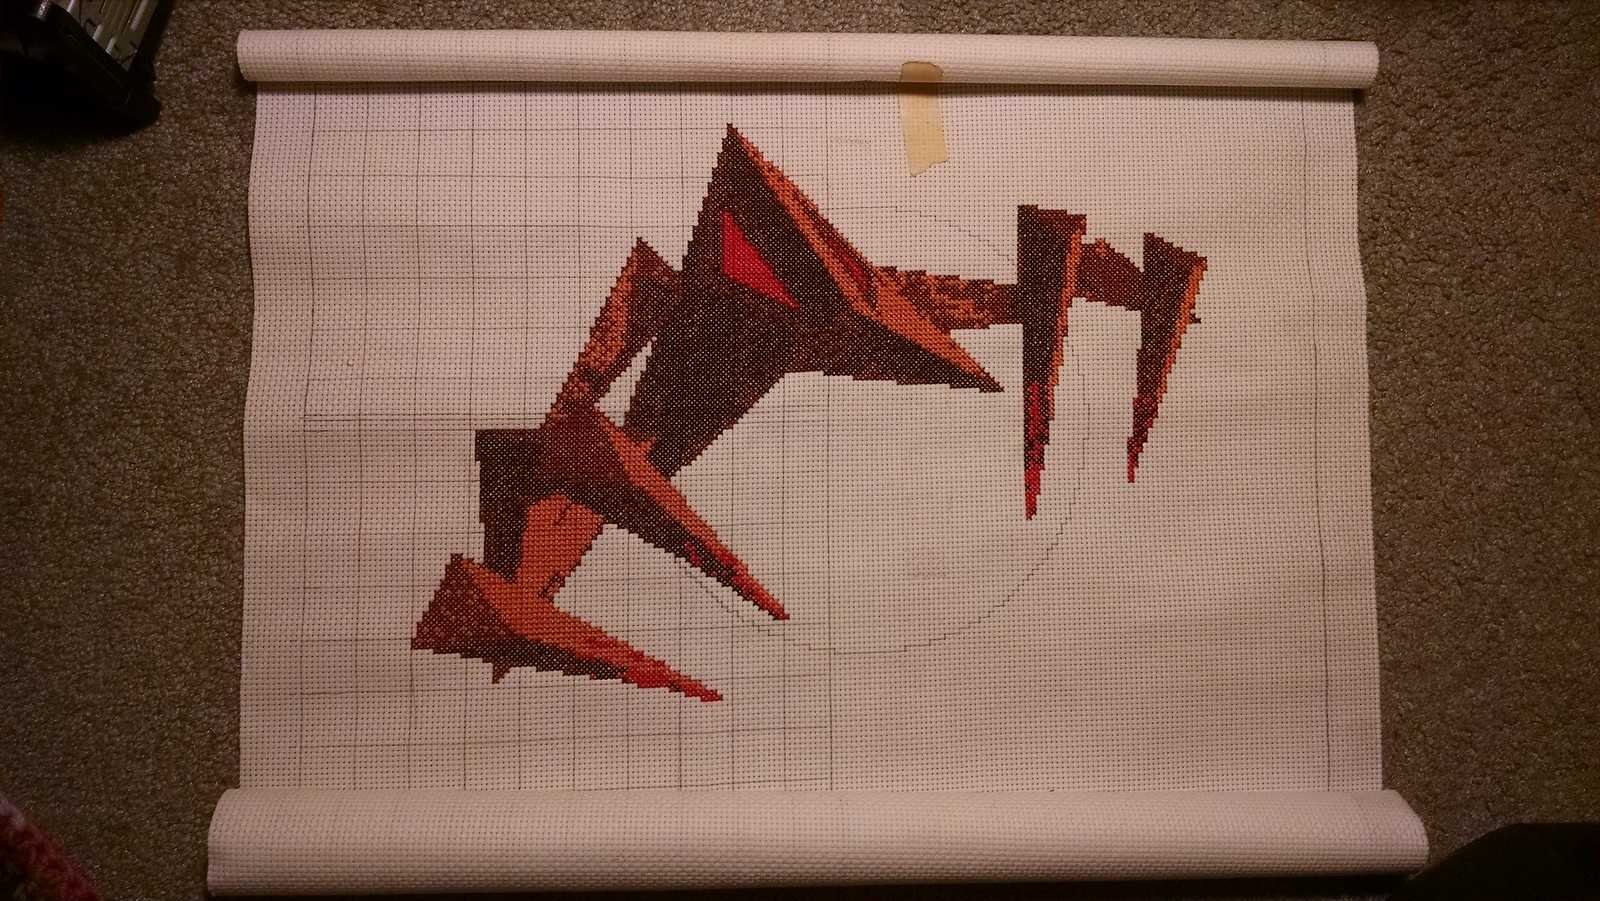 Descent 2 Embroidery